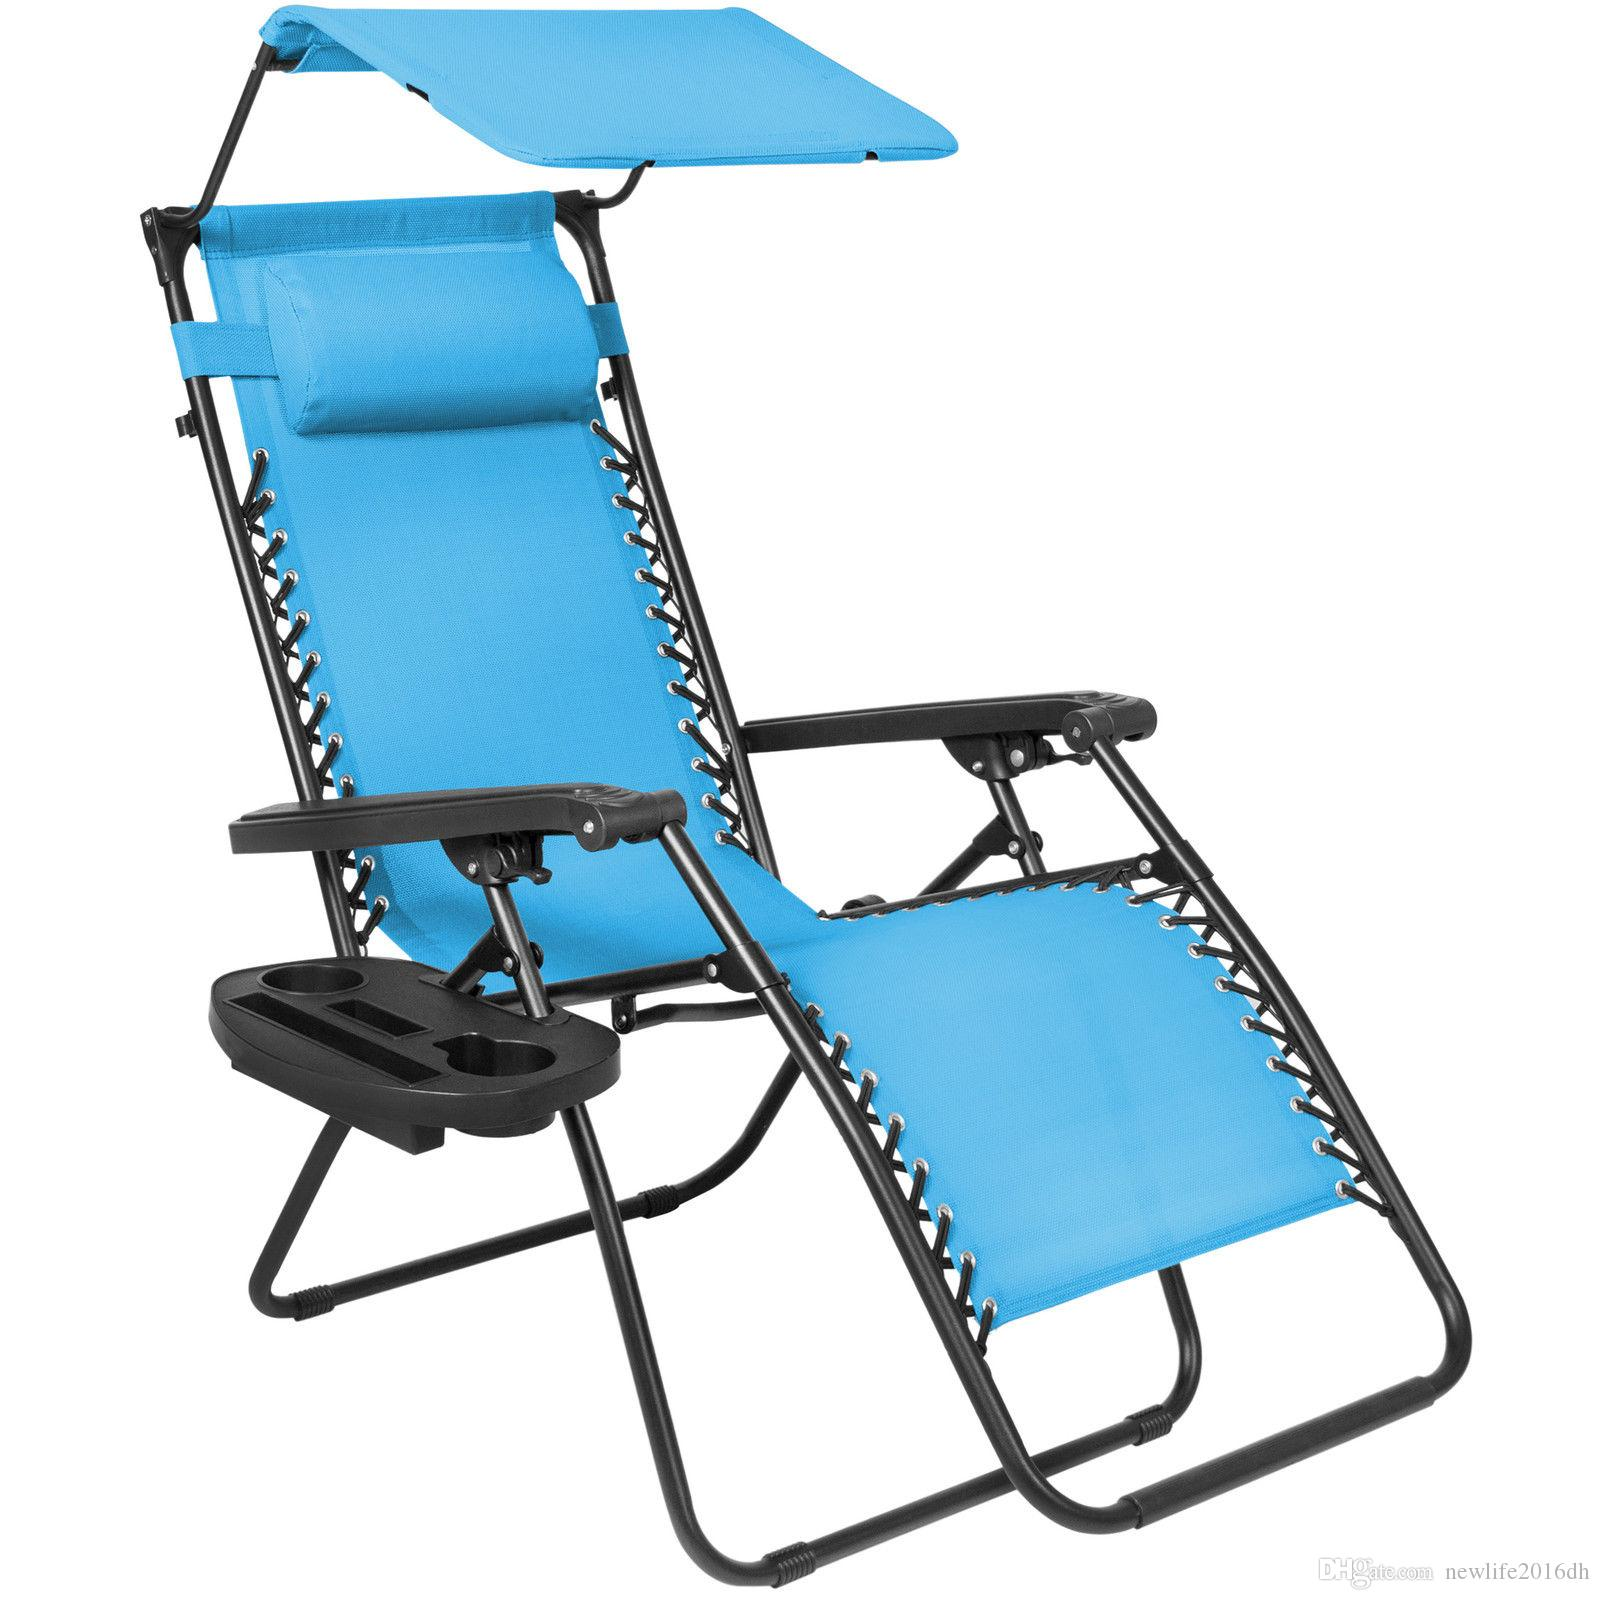 2018 Folding Zero Gravity Lounge Chair W/ Canopy U0026 Magazine Cup Holder  Light Blue From Newlife2016dh, $30.16 | Dhgate.Com